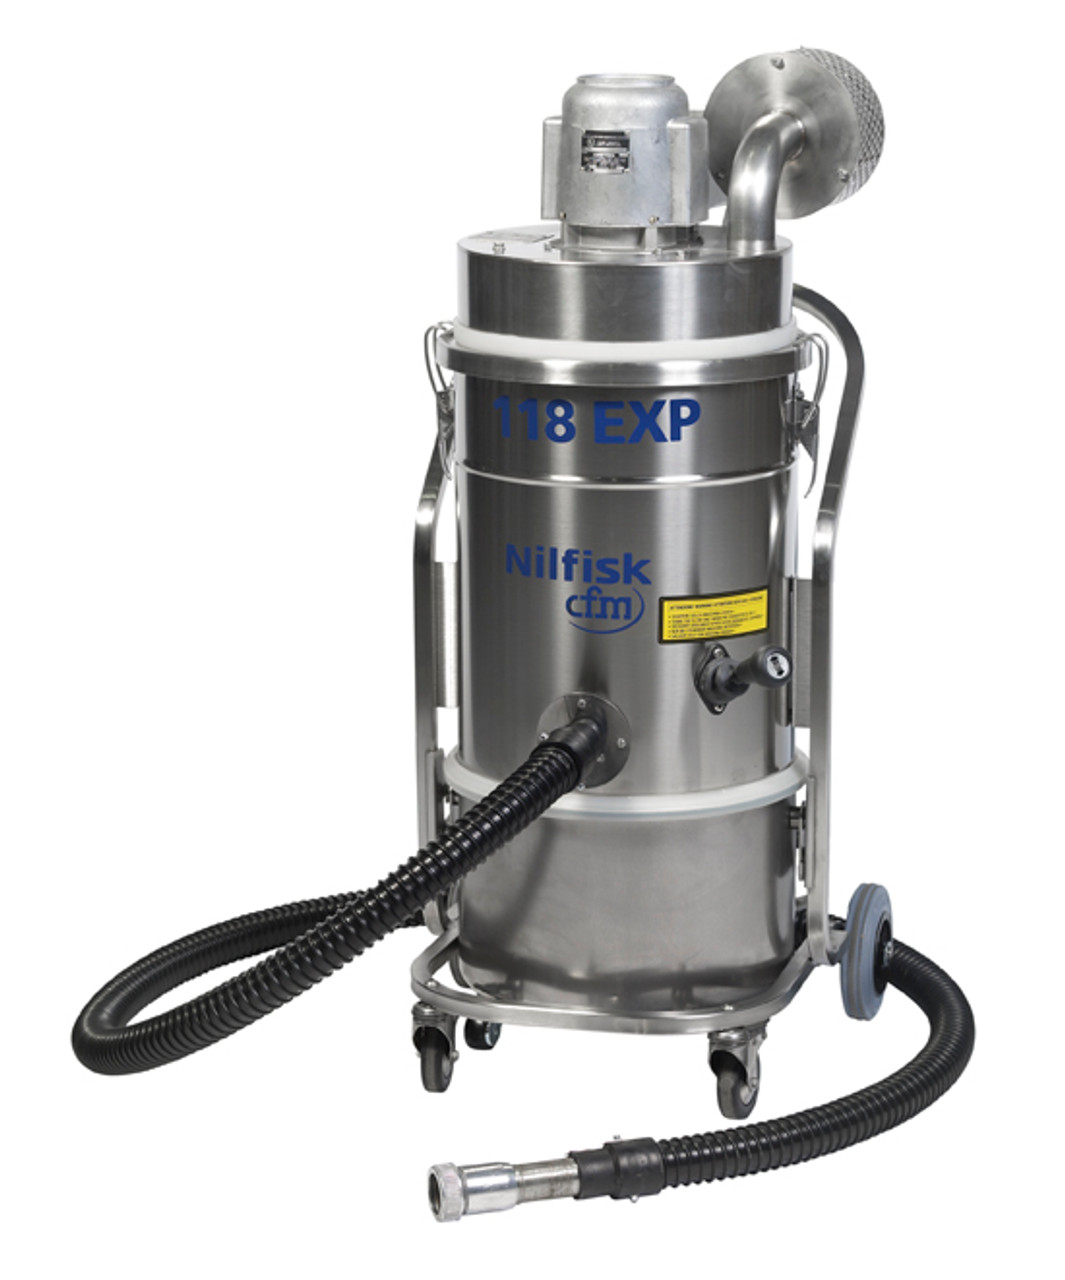 Good Nilfisk 118EXP With Hose Attached. (Dry Version)